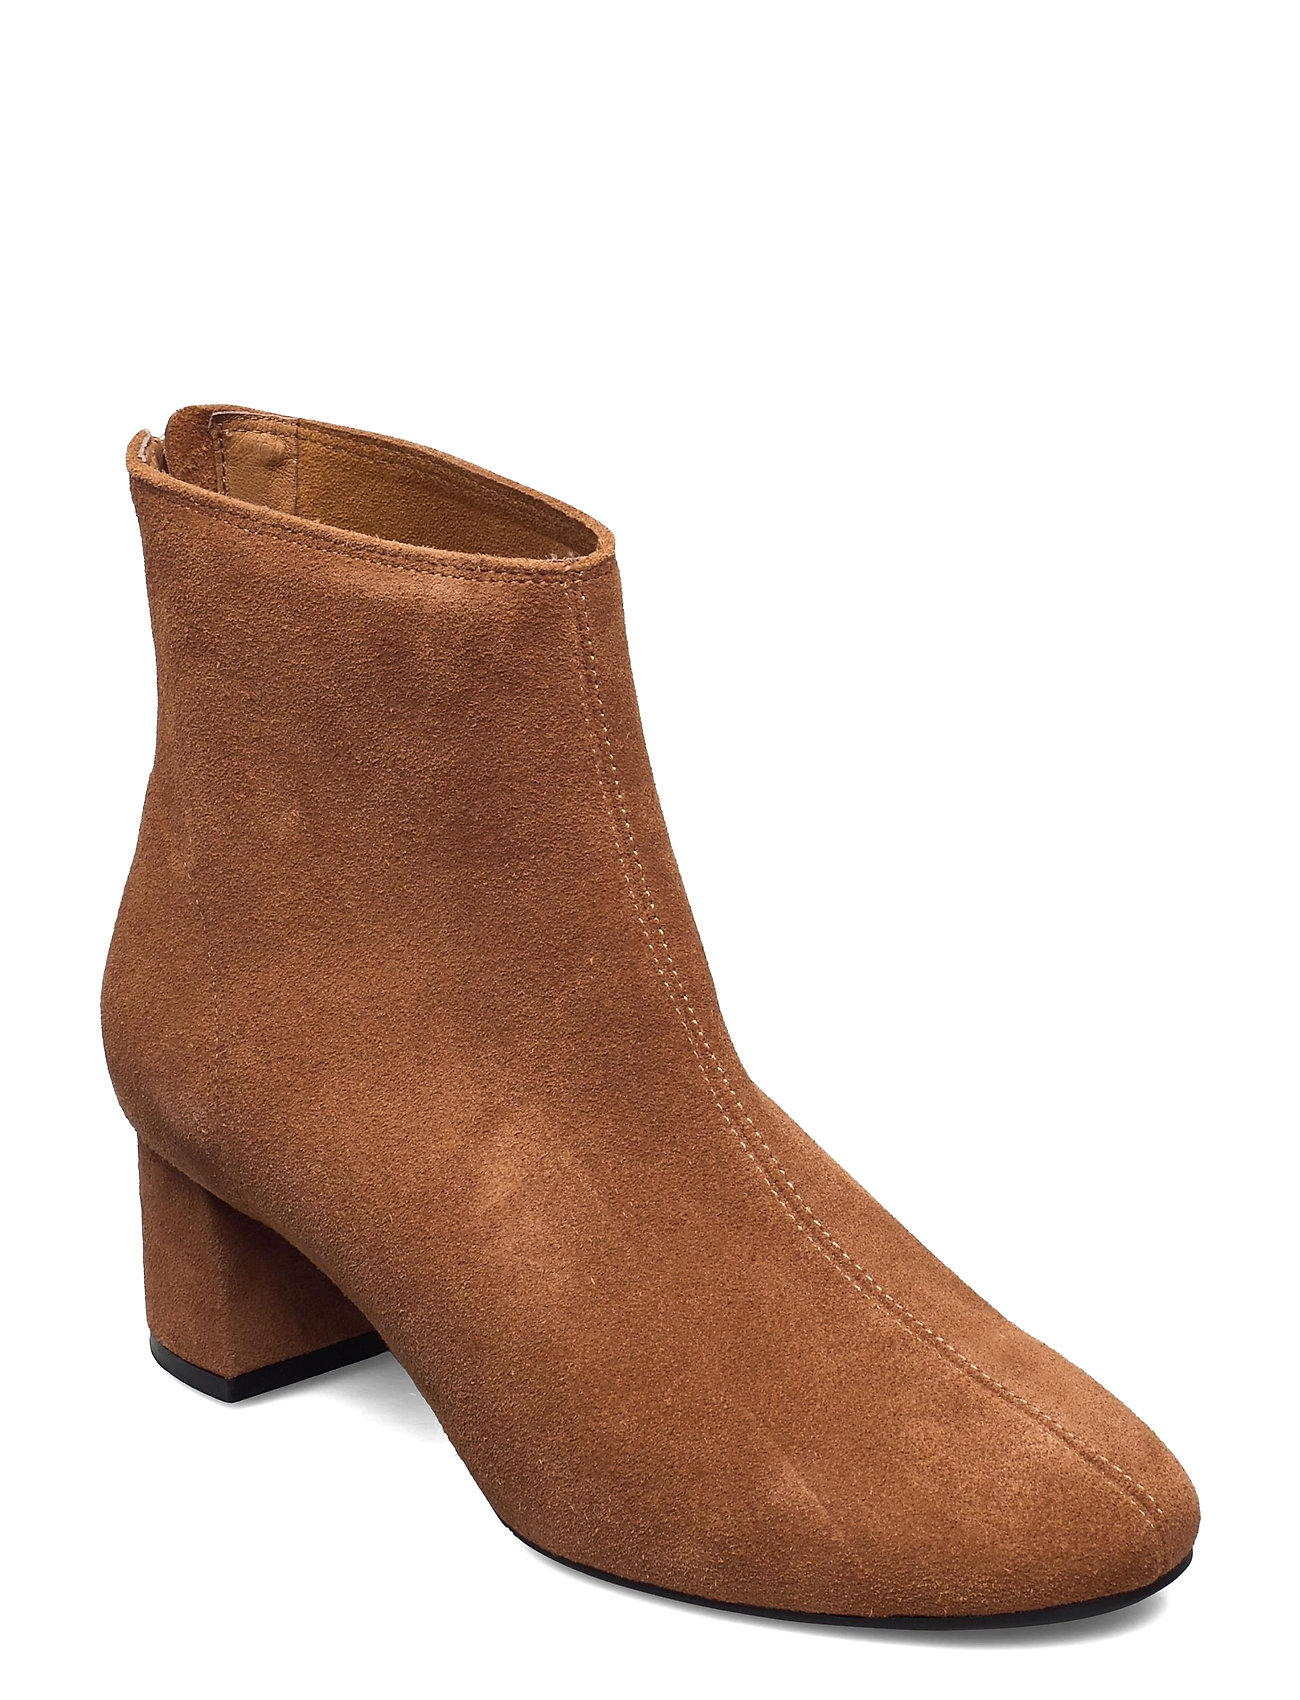 Image of High Heel Ankle Boot Shoes Boots Ankle Boots Ankle Boot - Heel Brun Ilse Jacobsen (3461043895)